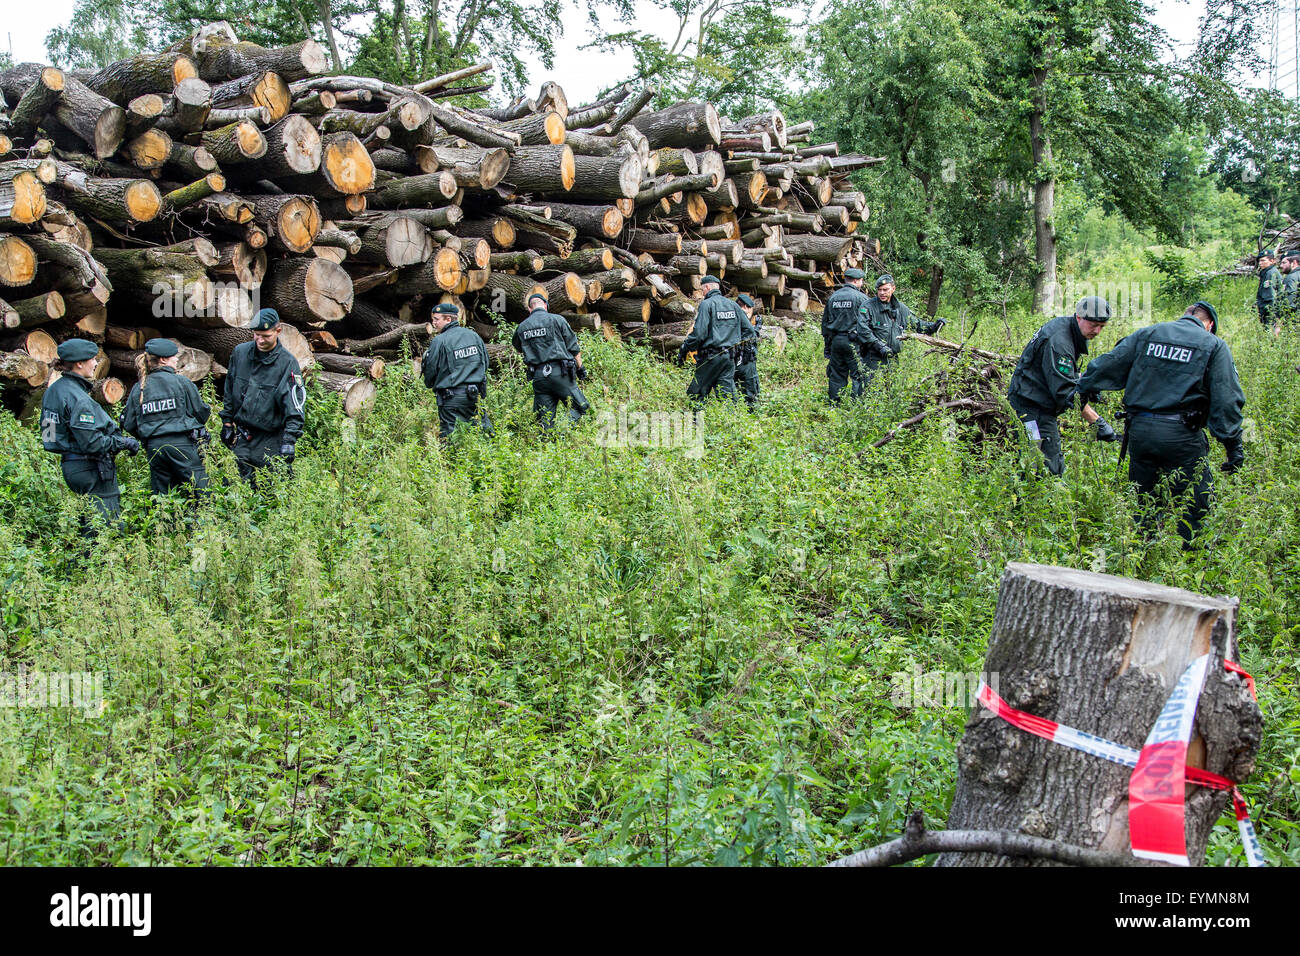 Riot police units searches a wooded area for traces of the missing Annette L., who has been missing for 5 years. - Stock Image